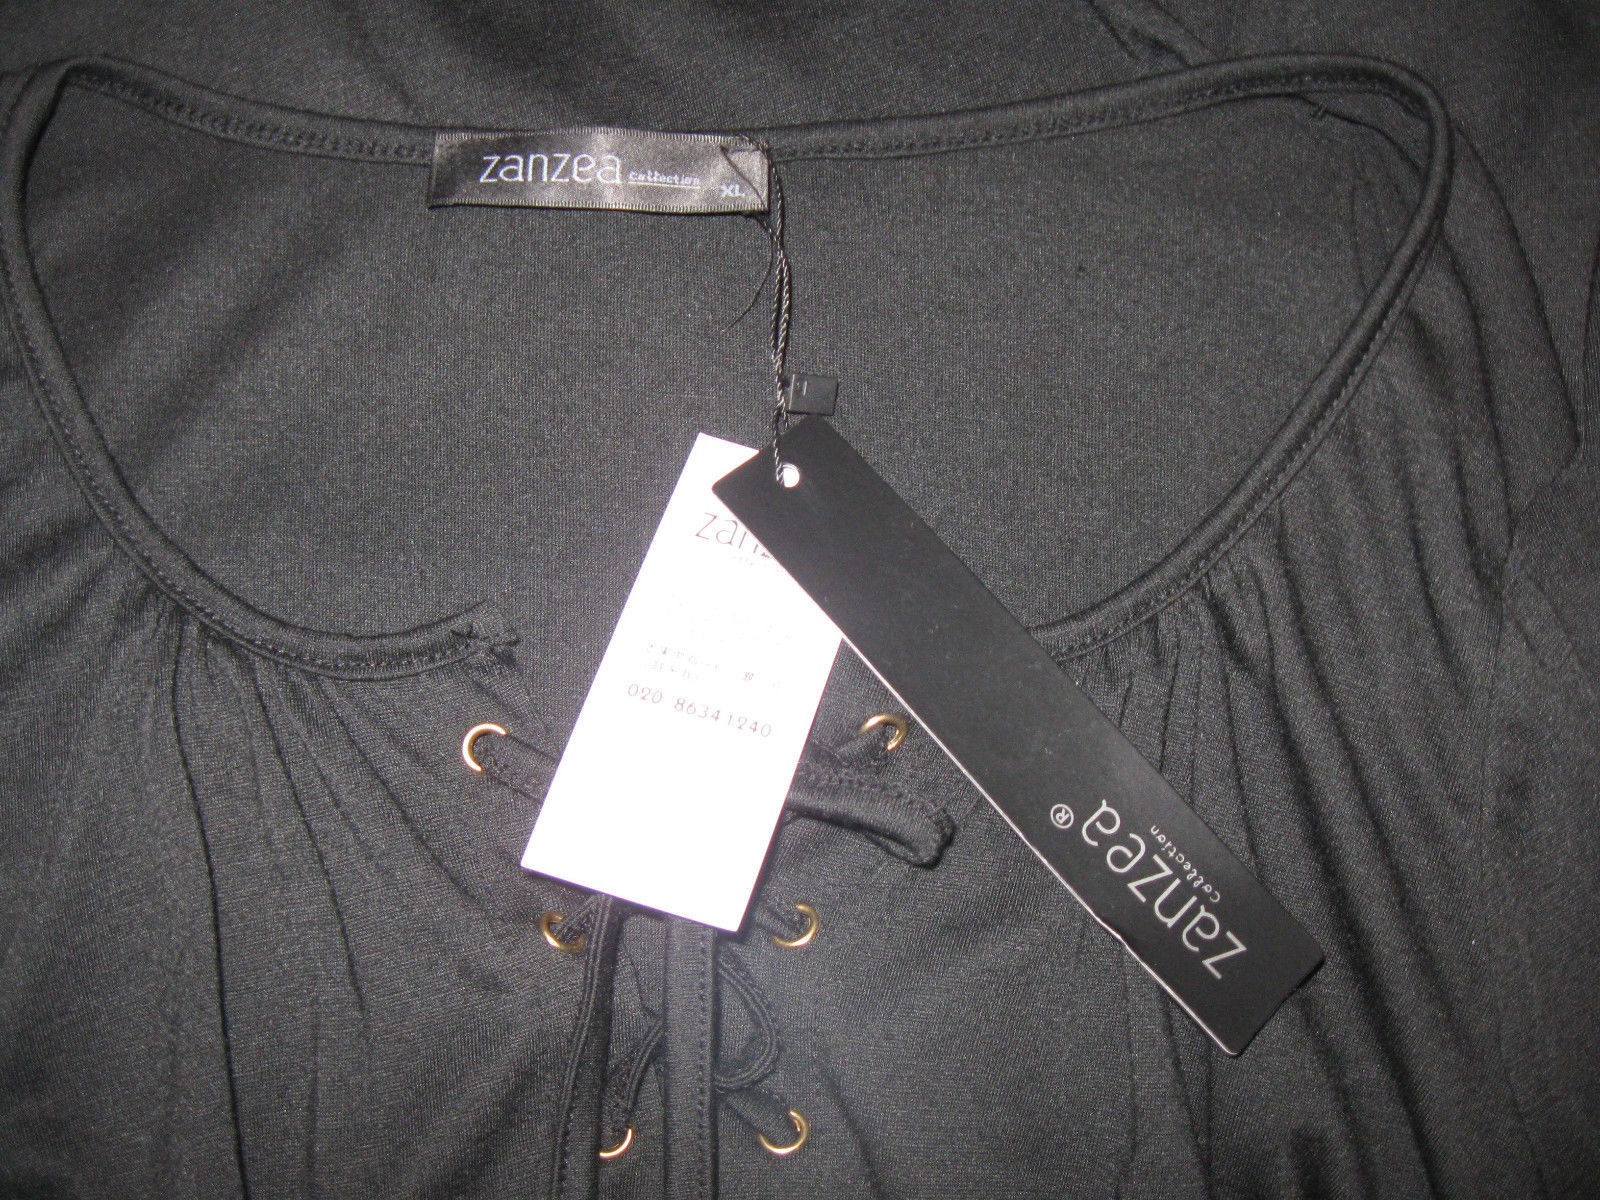 NWT Size M/L ZANZEA Top Shirt Black Scoop Neck Long Sleeve Lace Up Blouse